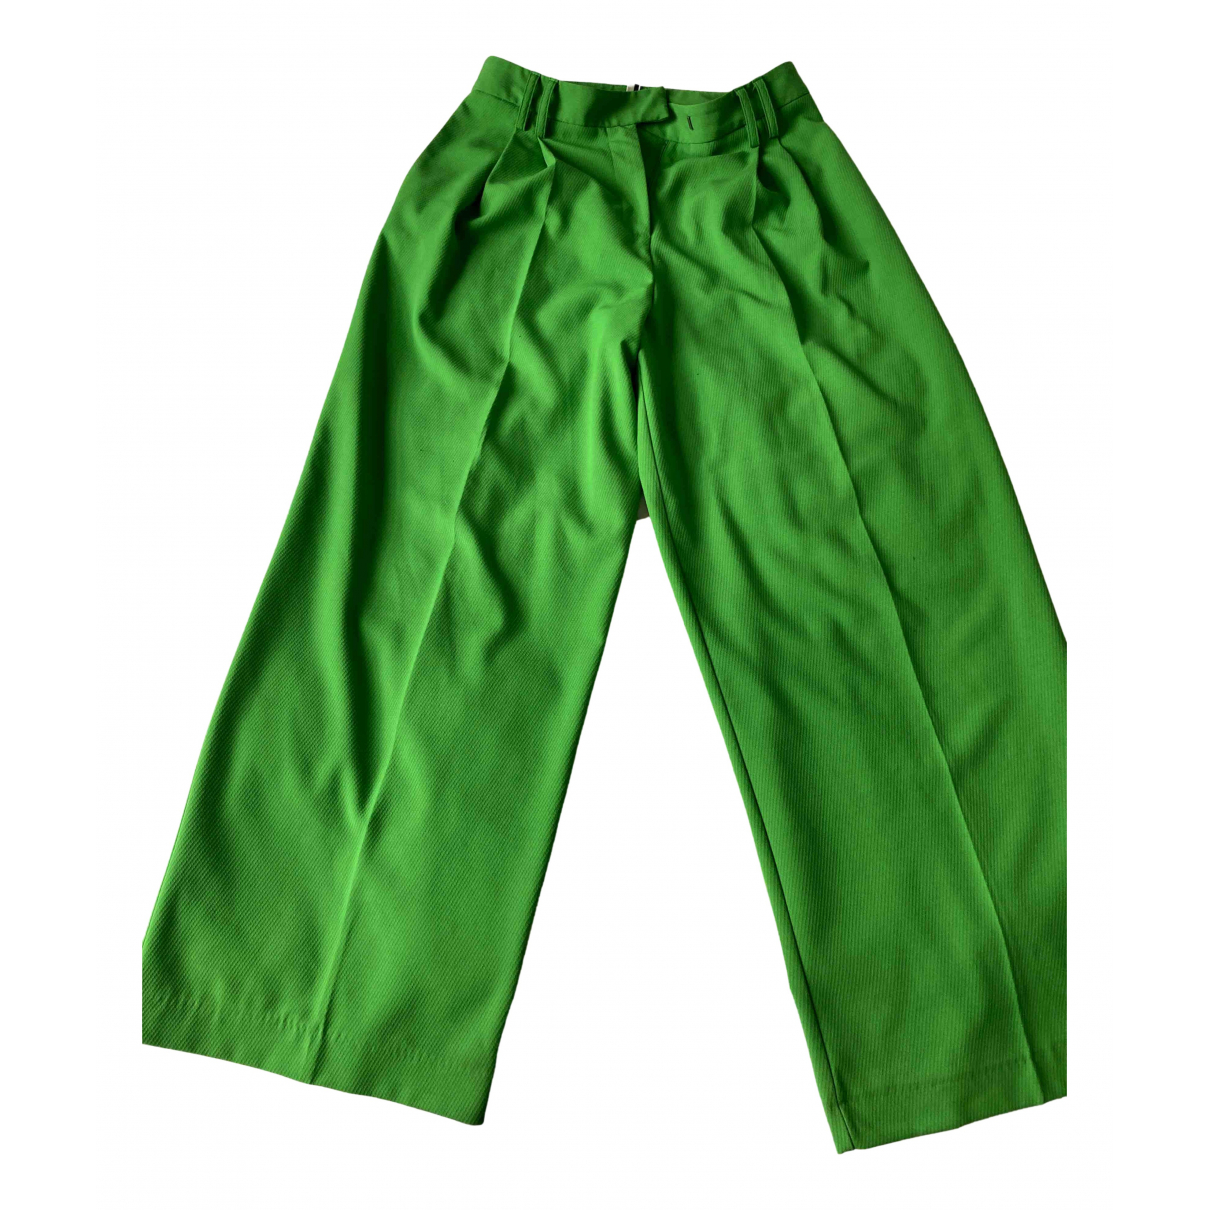 tophop N Green Trousers for Women 10 UK